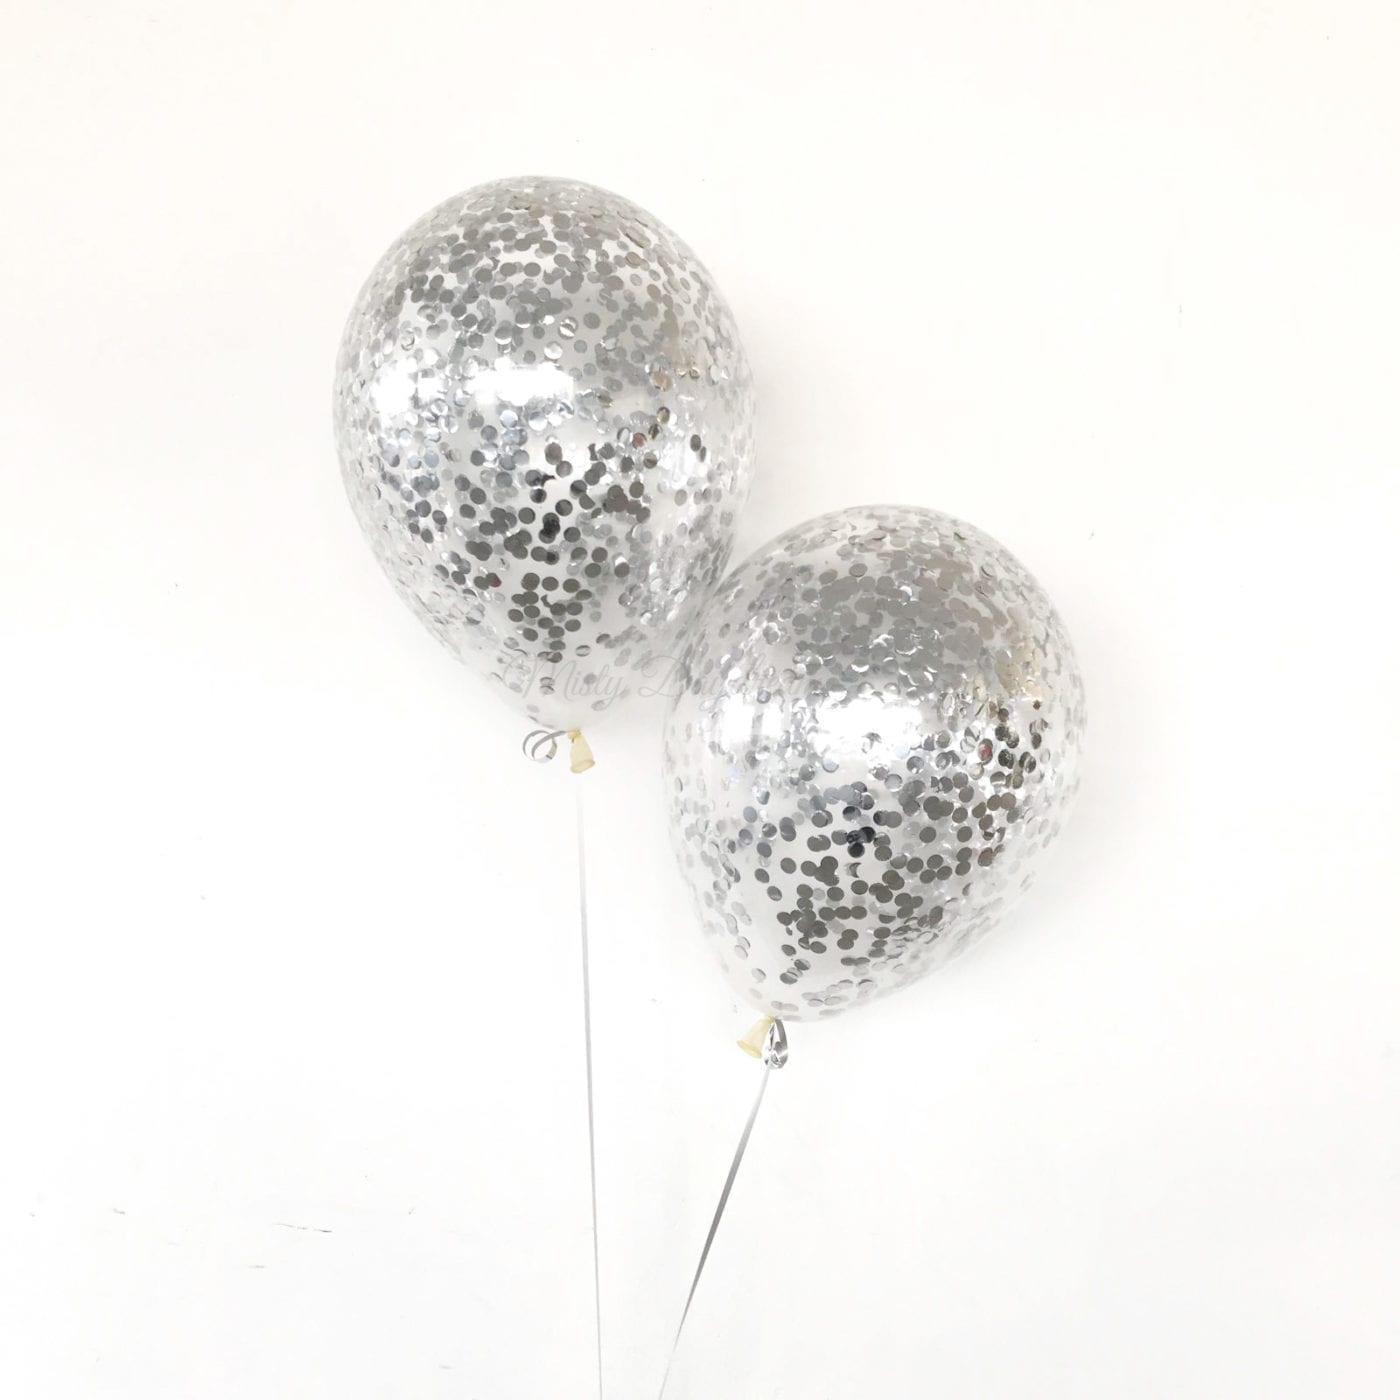 baby pool chair beach brands [helium inflated balloons] - 12 inch, 1cm confetti latex balloons metallic silver misty daydream